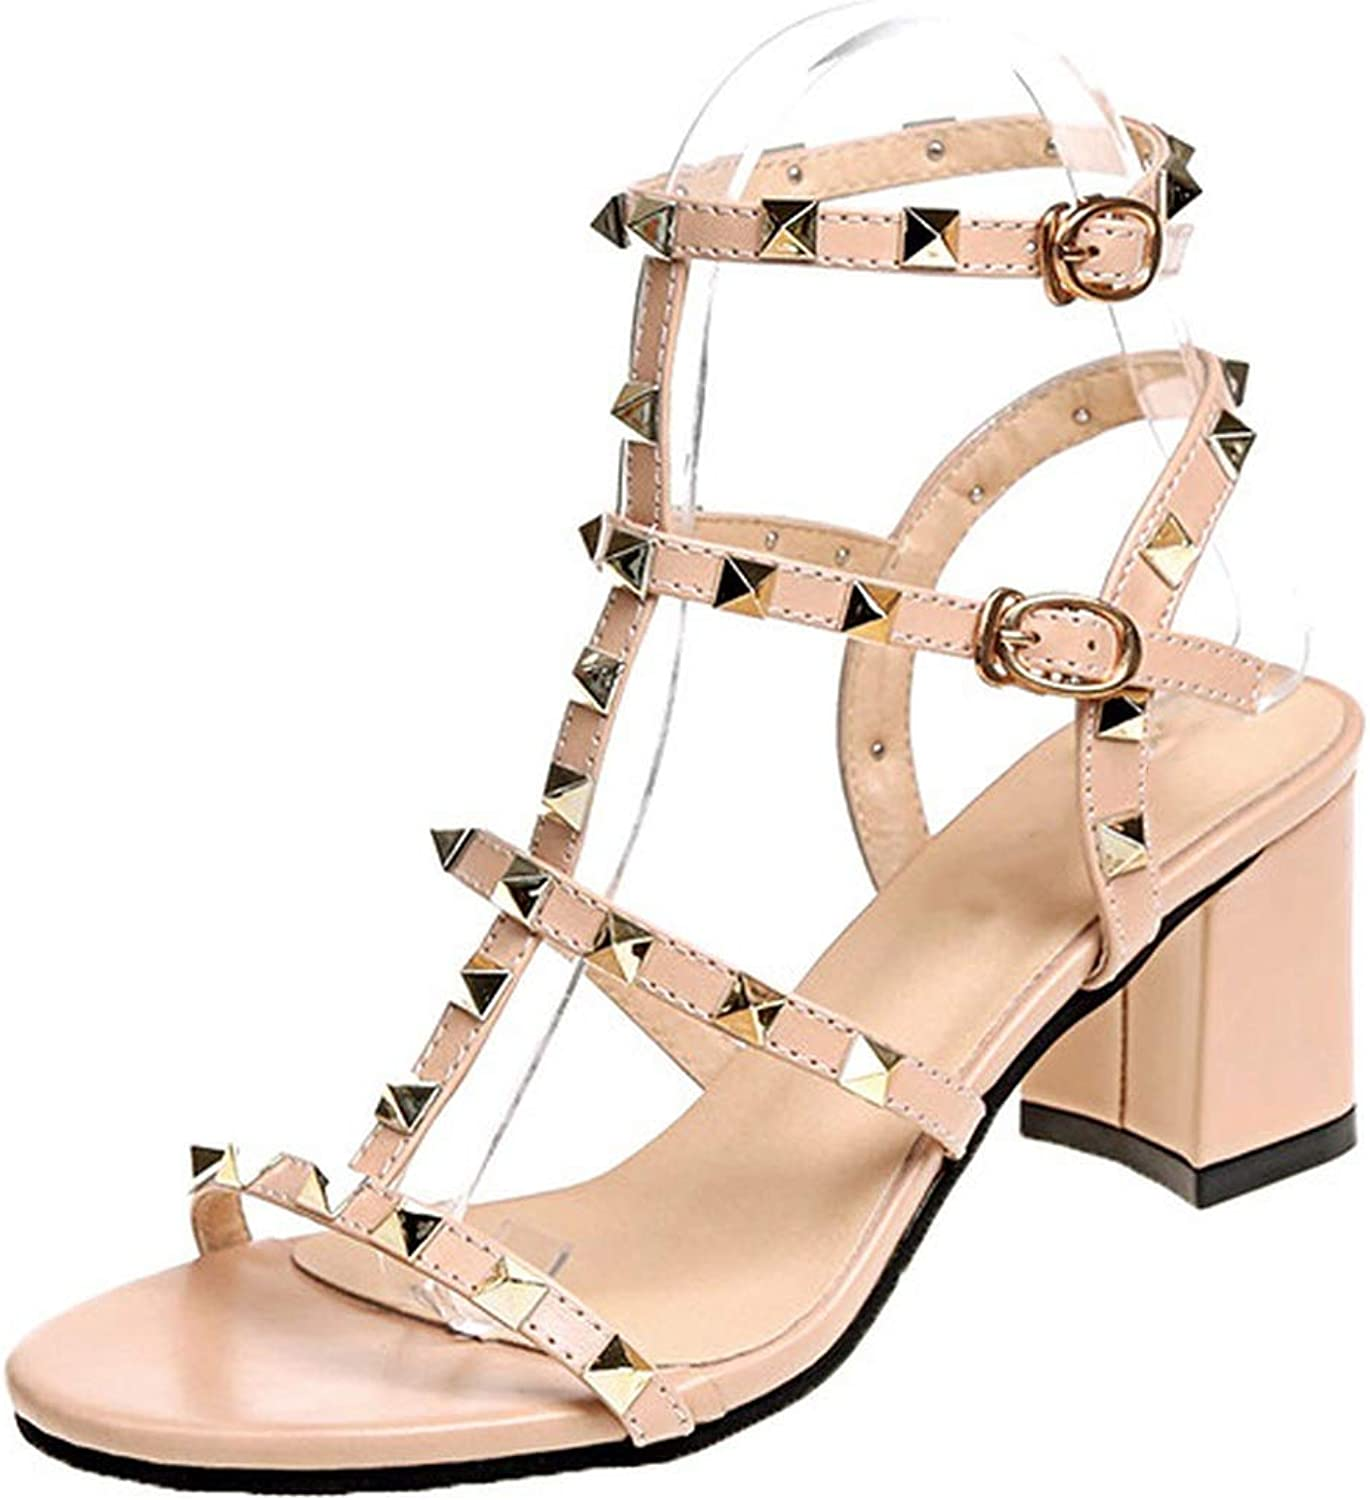 Ladies Square Heel Sandals Women shoes Buckle Gladiator Rivet Sexy Lady Thick Heel shoes